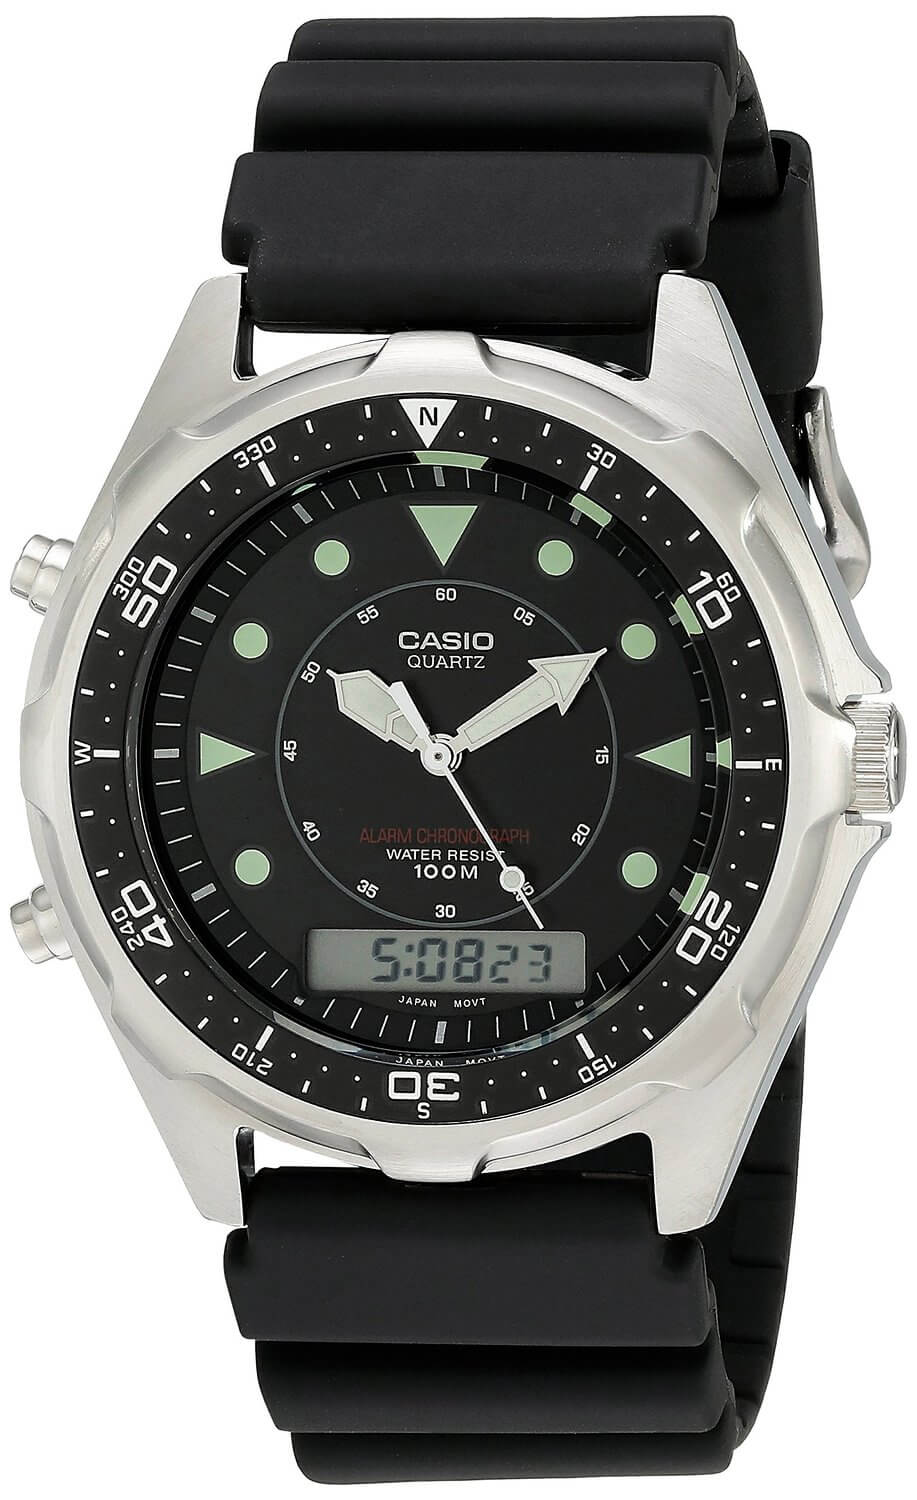 Casio AMW320R-1EV underwater watch